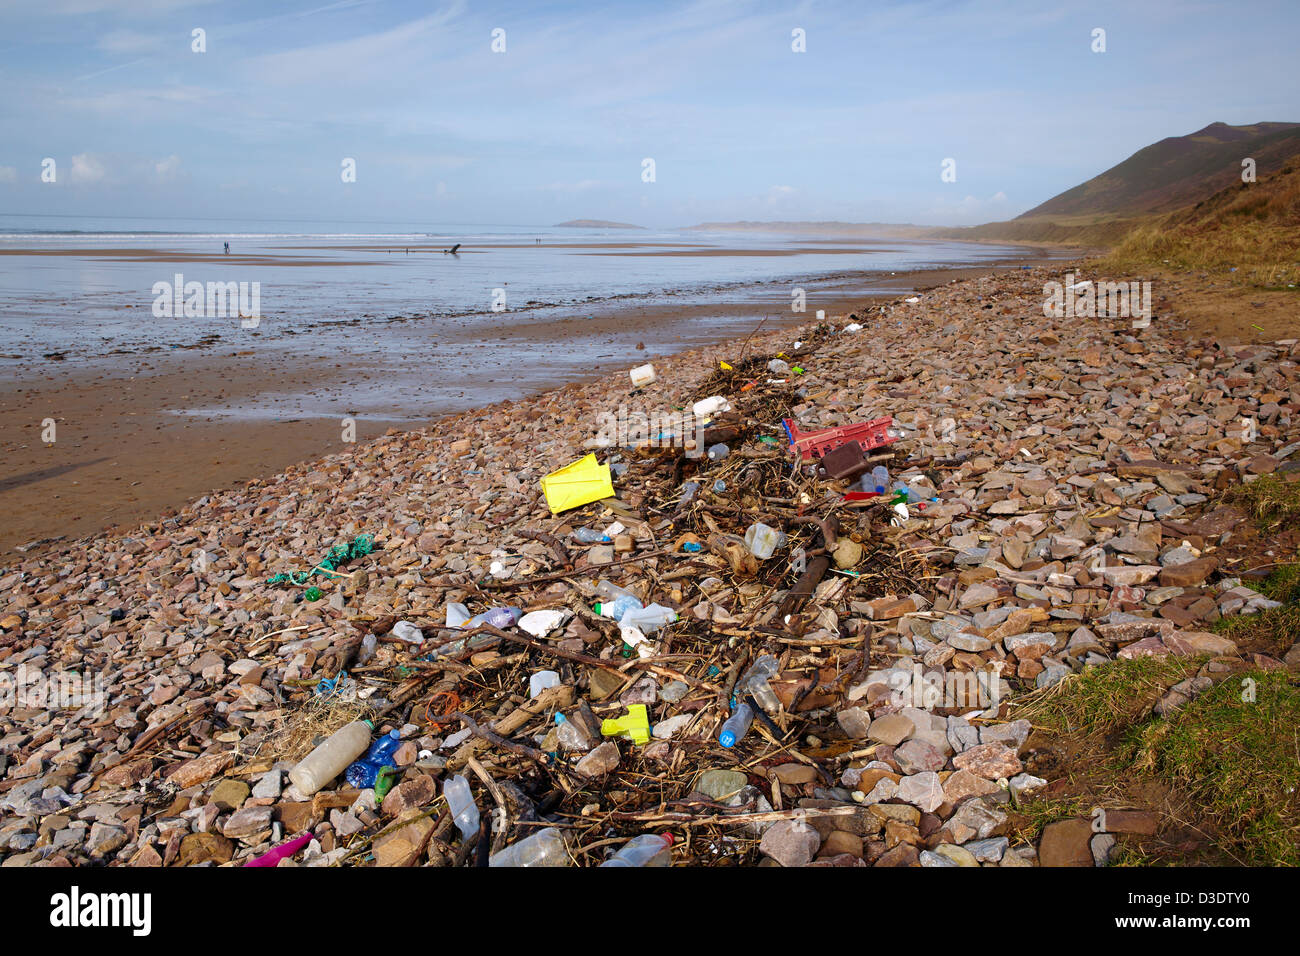 Rubbish along the high tide mark, Rhossili beach, Gower, Swansea, Wales. - Stock Image